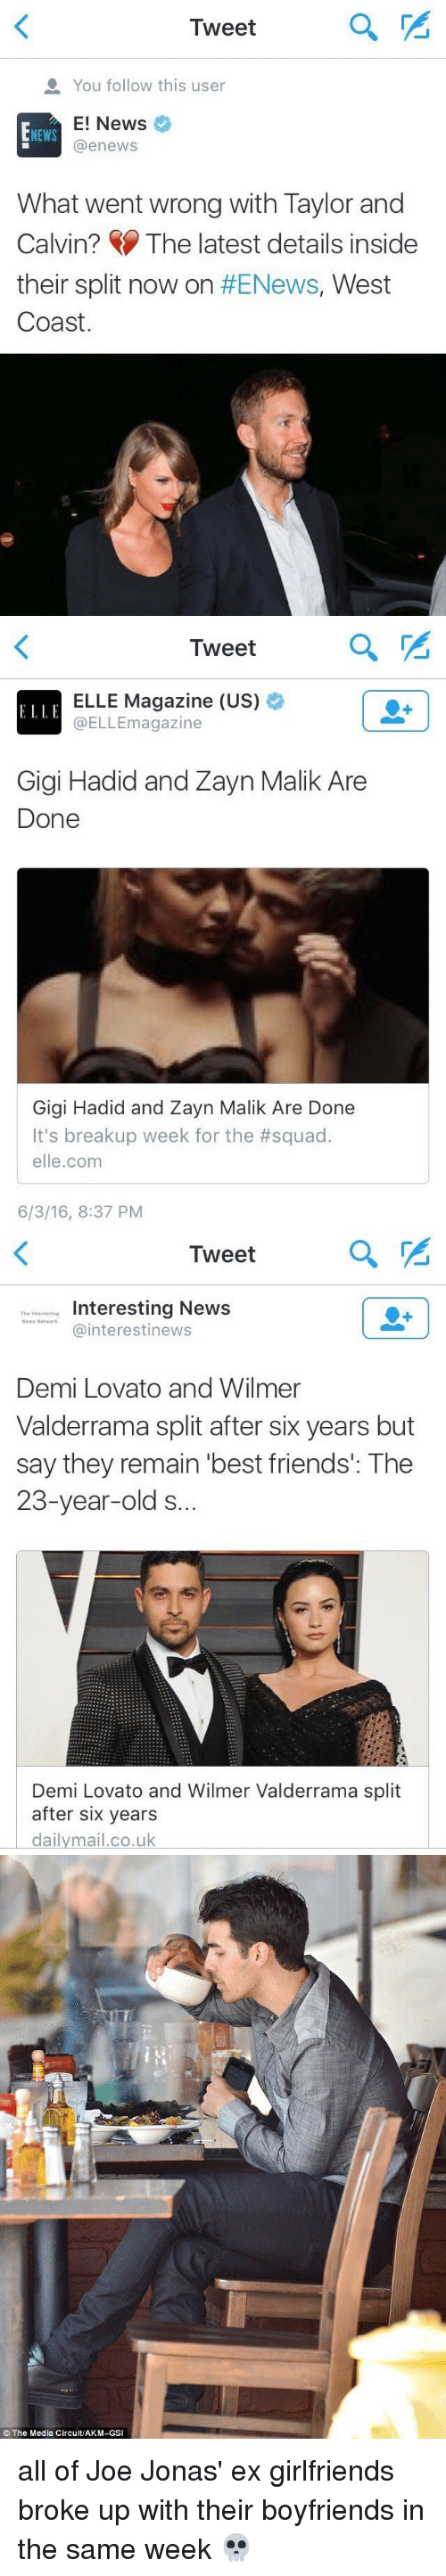 Squadding: Tweet  a You follow this user  E! News  NEWS  @enews  What went wrong with Taylor and  Calvin? The latest details inside  their split now on  #ENews, West  Coast.   Tweet  ELLE  ELLE Magazine (US)  °  @ELLEmagazine  Gigi Hadid and Zayn Malik Are  Done  Gigi Hadid and Zayn Malik Are Done  It's breakup week for the #squad.  elle.com  6/3/16, 8:37 PM   Tweet  Interesting News  Th  s Network  Cainterestinews  Demi Lovato and Wilmer  Valderrama split after six years but  say they remain best friends': The  23-year-old s.  Demi Lovato and Wilmer Valderrama split  after six years  dailymail.co.uk   The Media Circuit/AKM-GSI all of Joe Jonas' ex girlfriends broke up with their boyfriends in the same week 💀